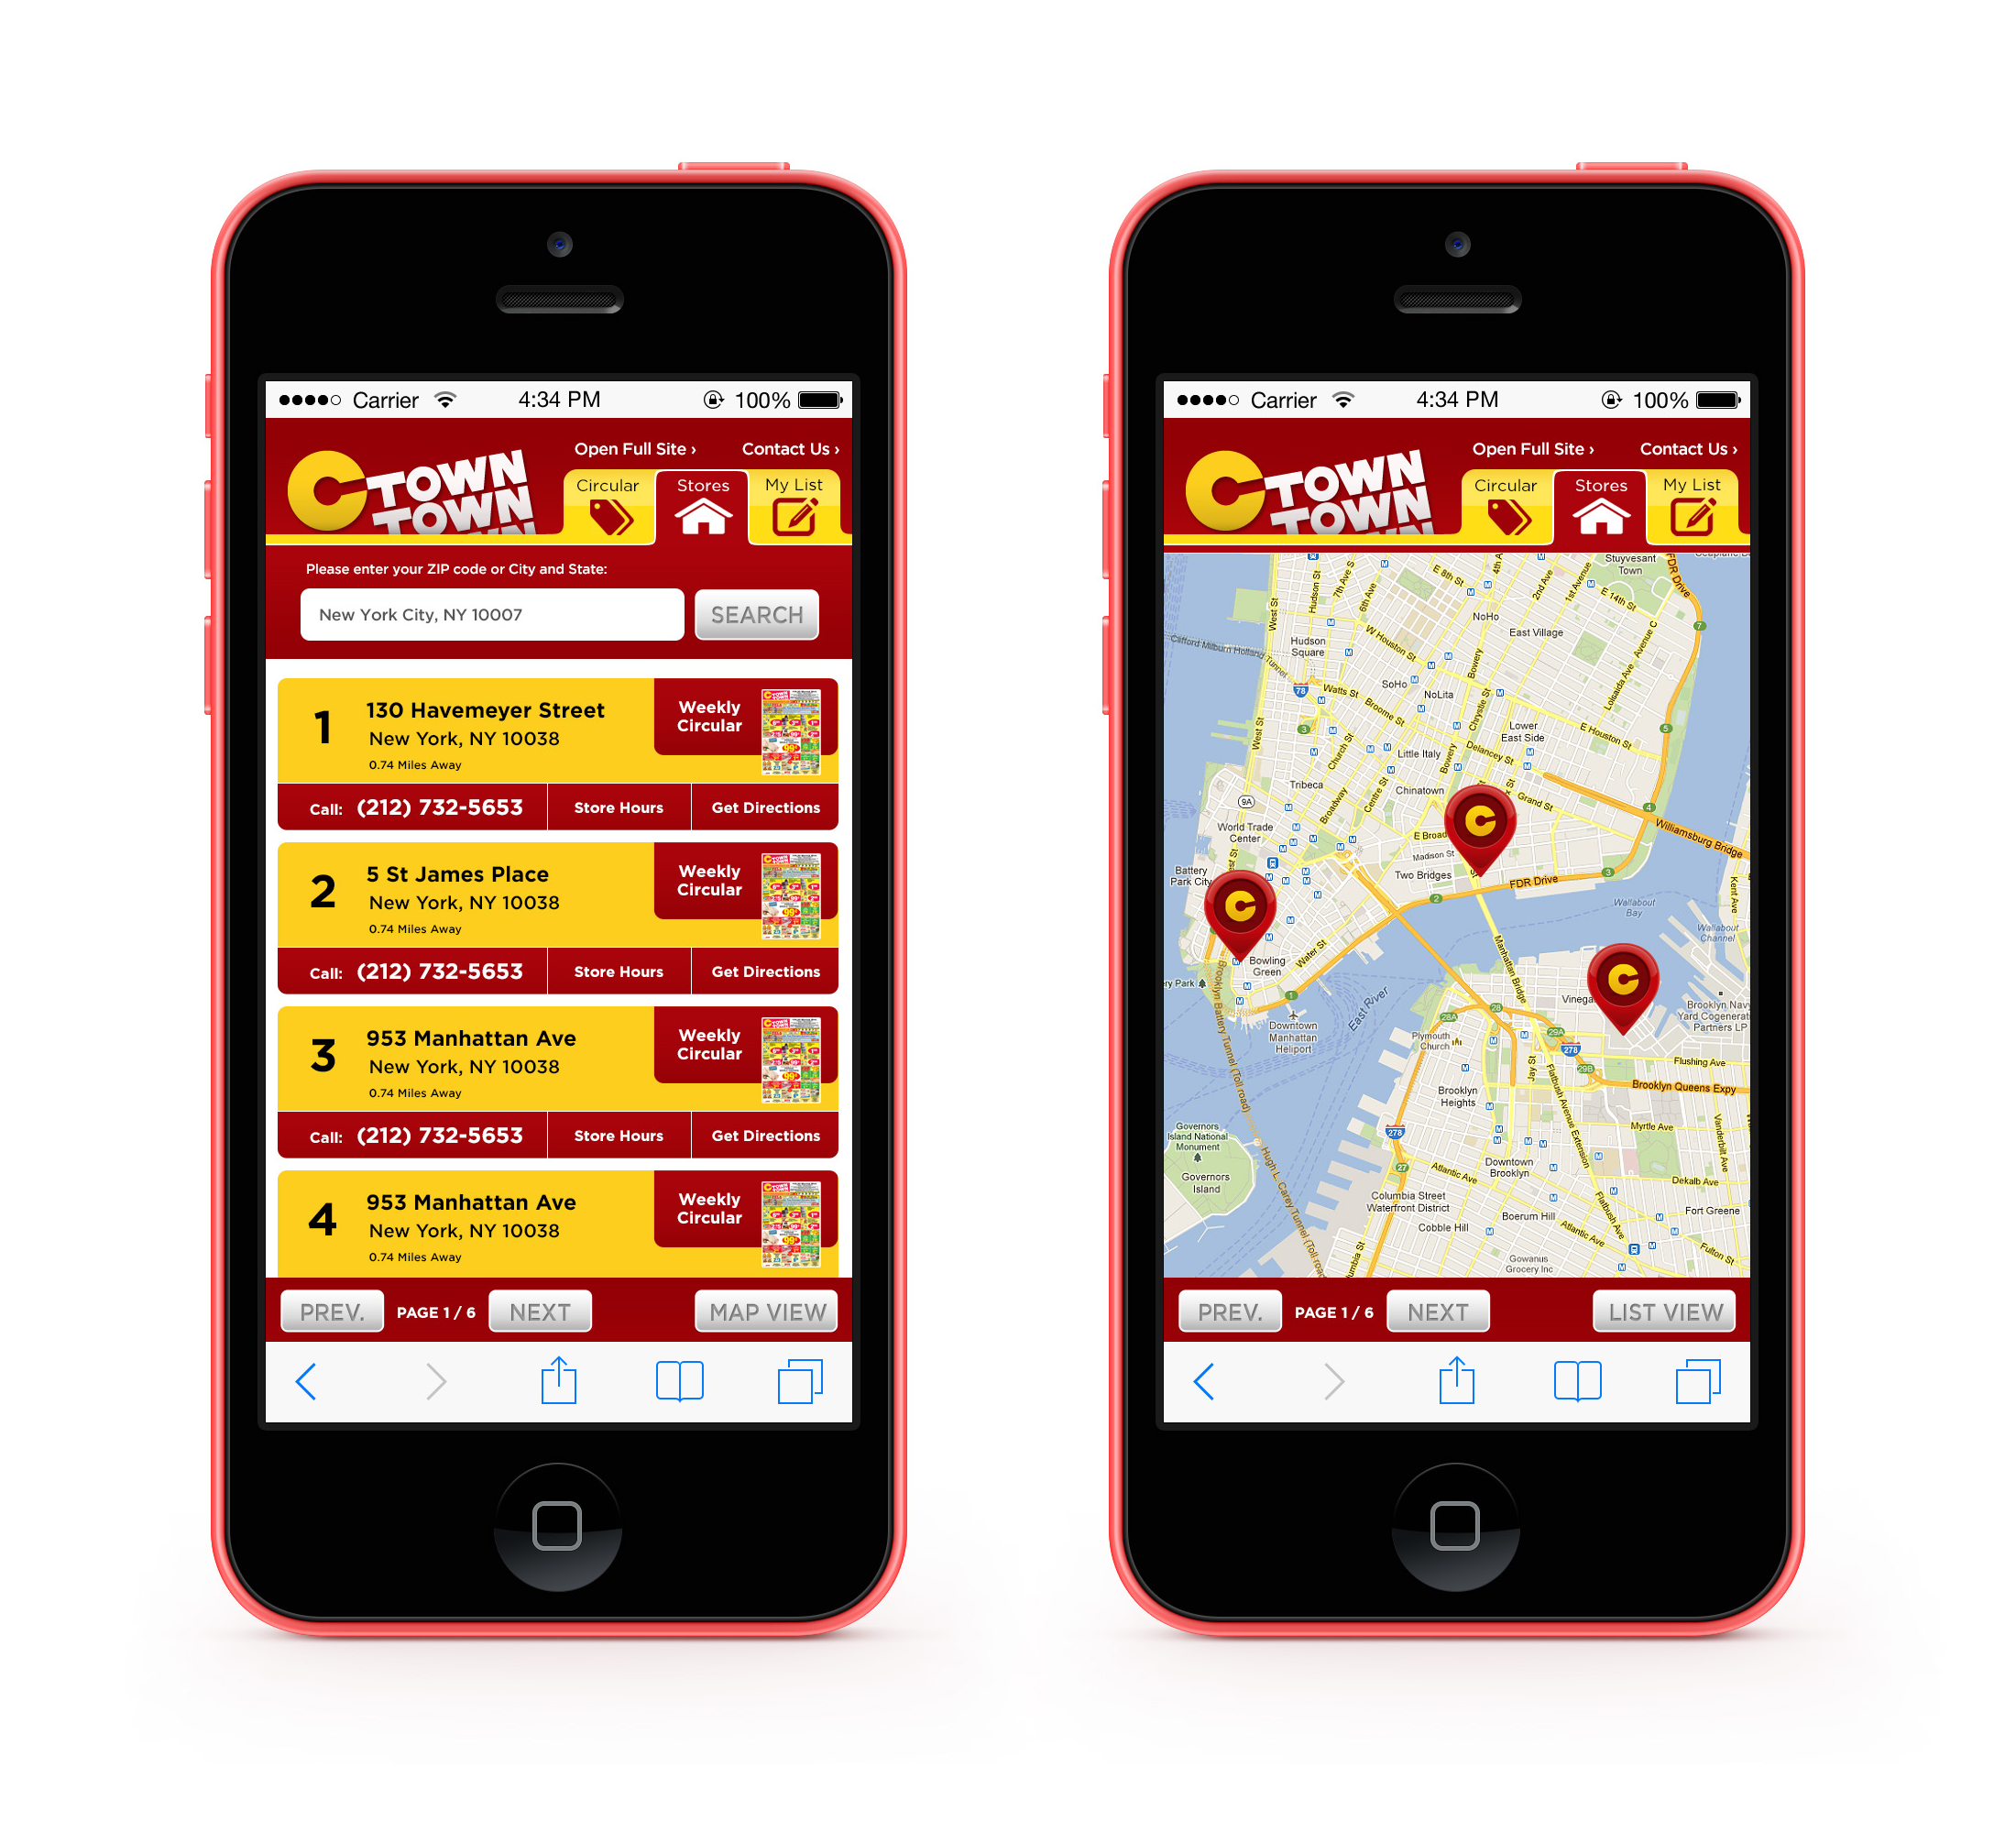 Mobile Site Map: C-Town Supermarket Mobile Site